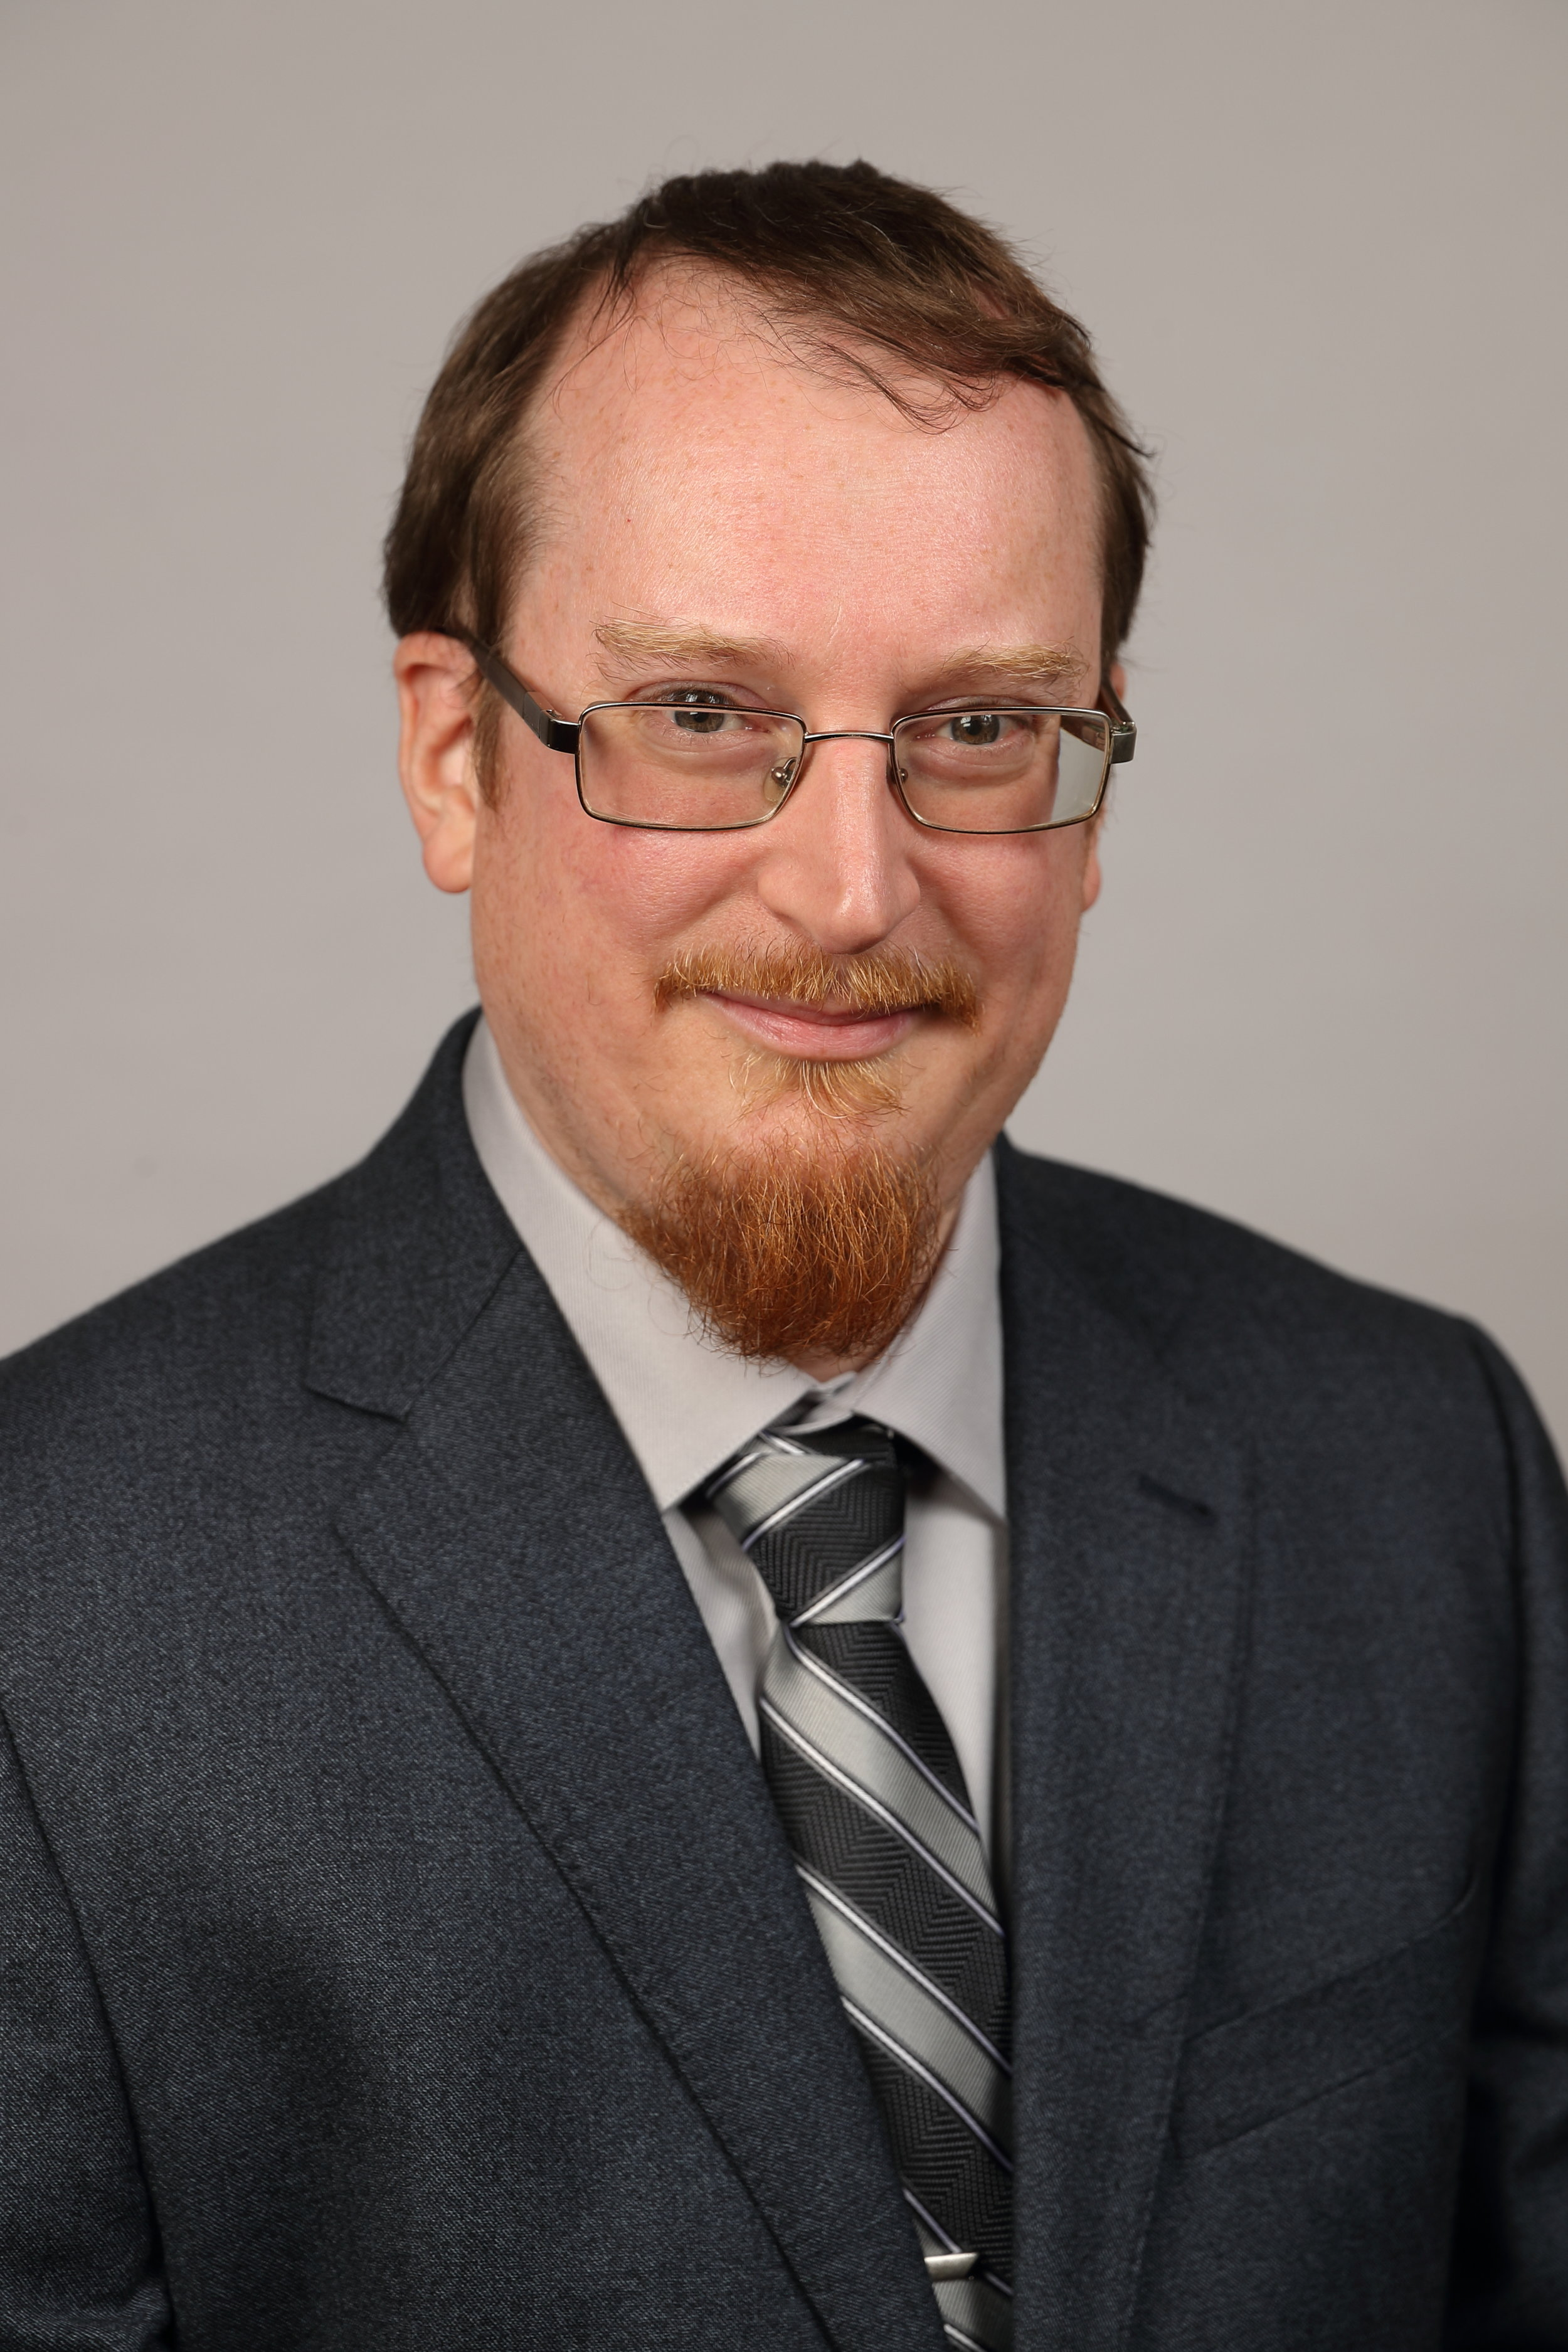 Kevin Hogan, Project Manager